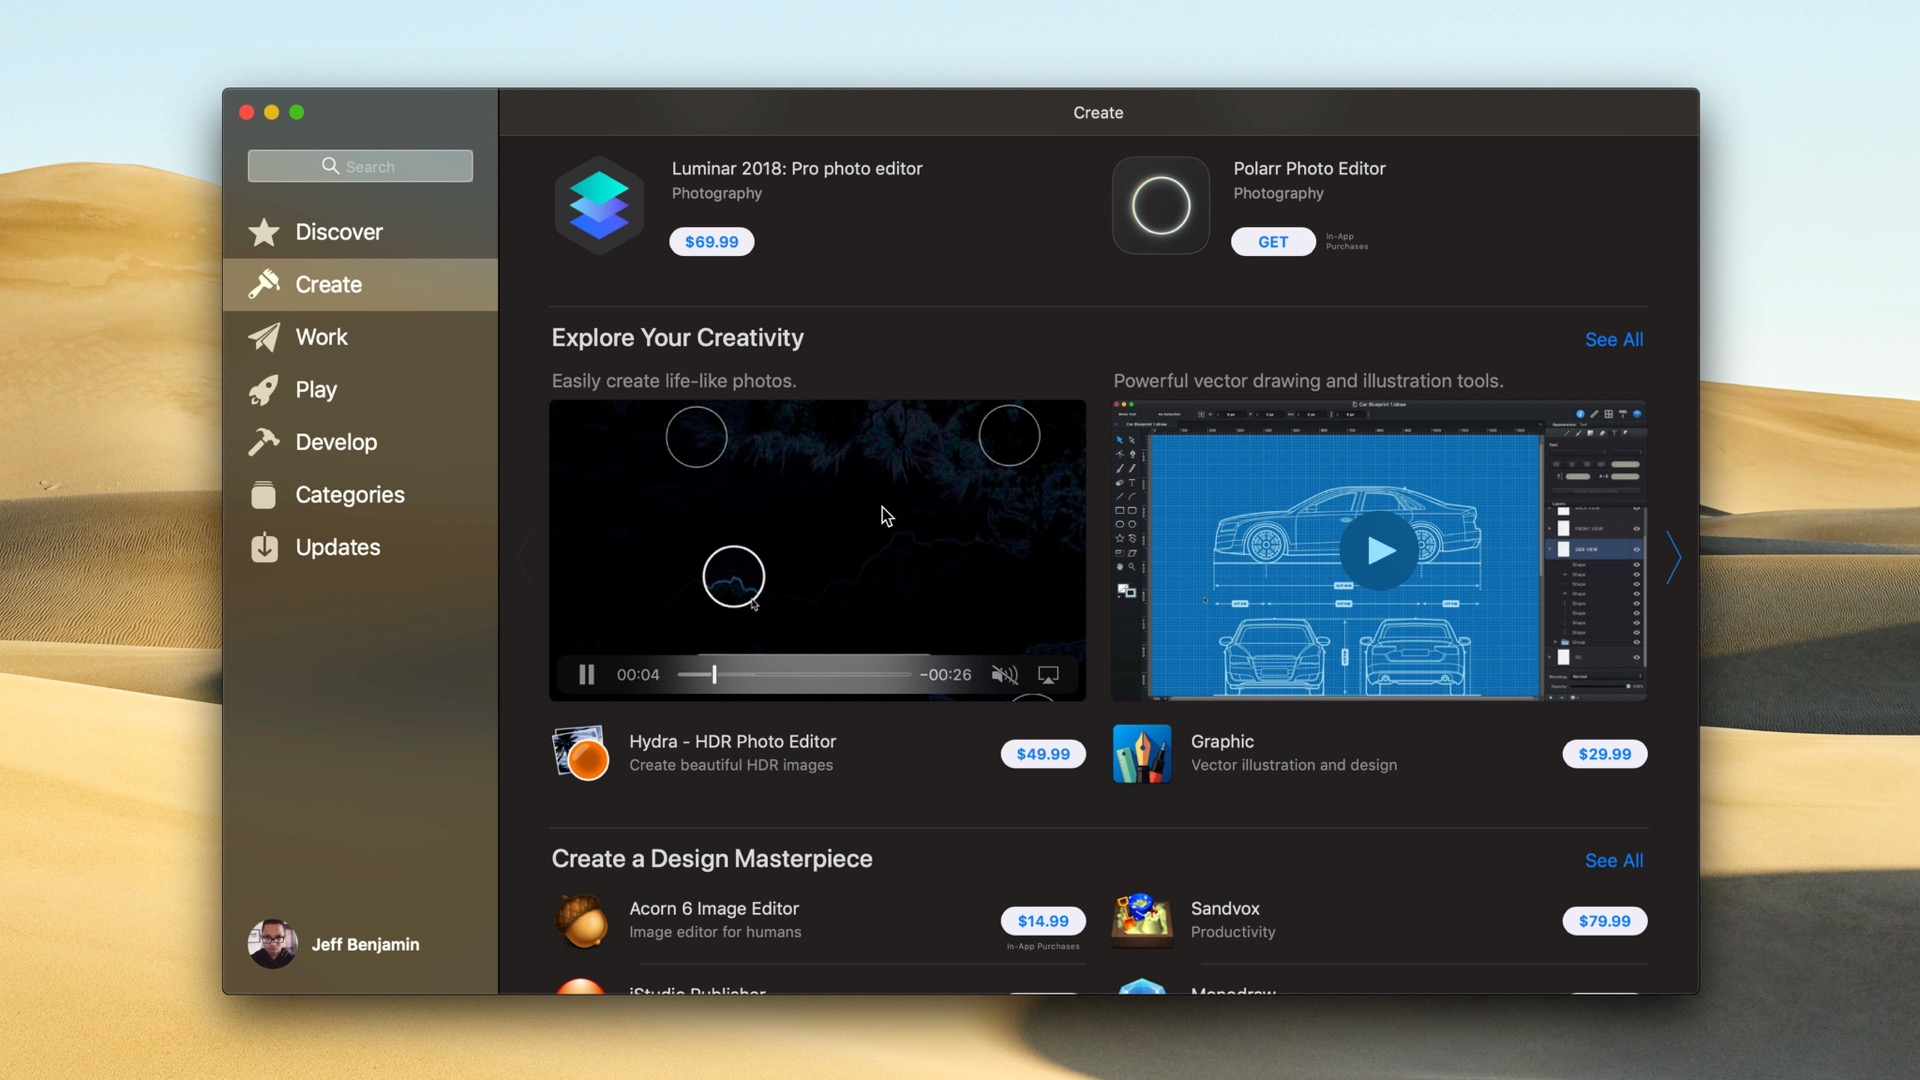 Apple says macOS developers can now release app updates in phases through the Mac App Store